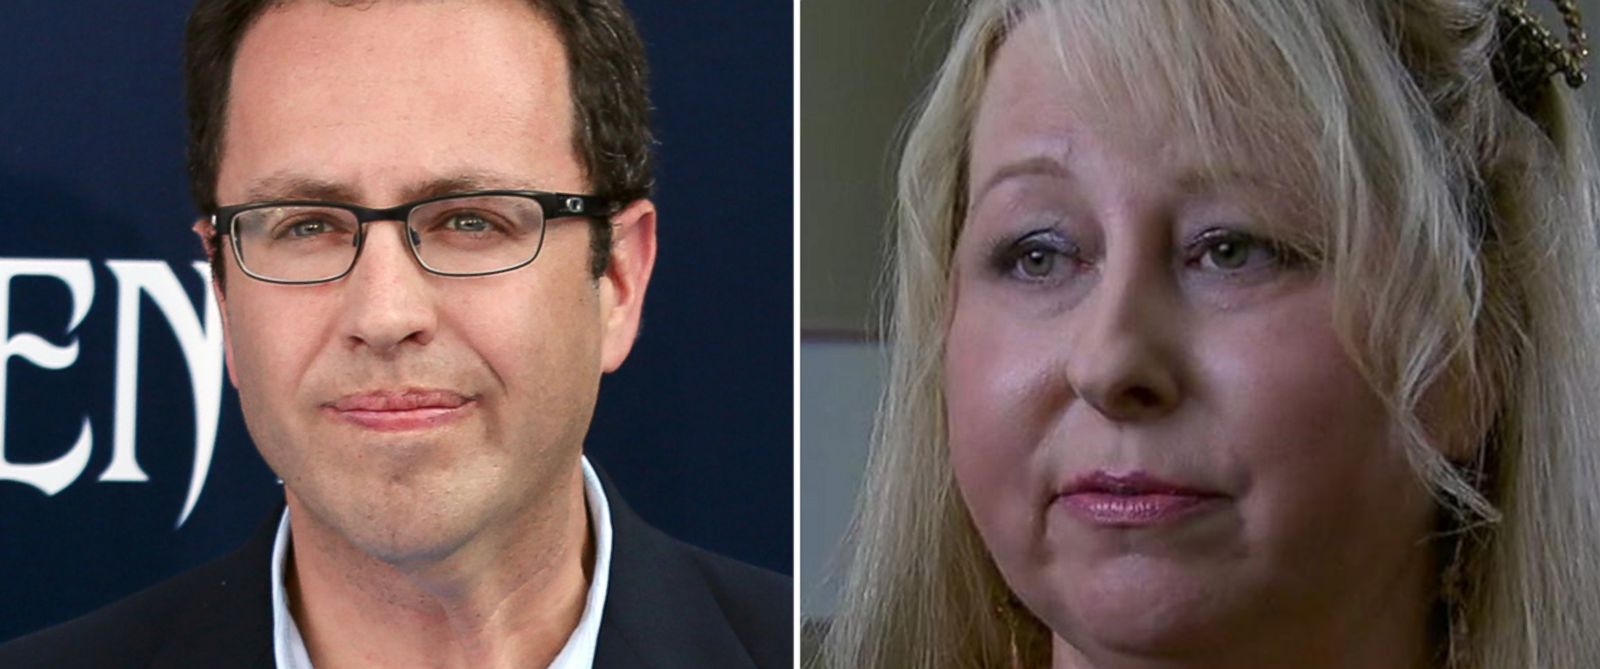 PHOTO: Jared Fogle and Rochelle Herman-Walrond.